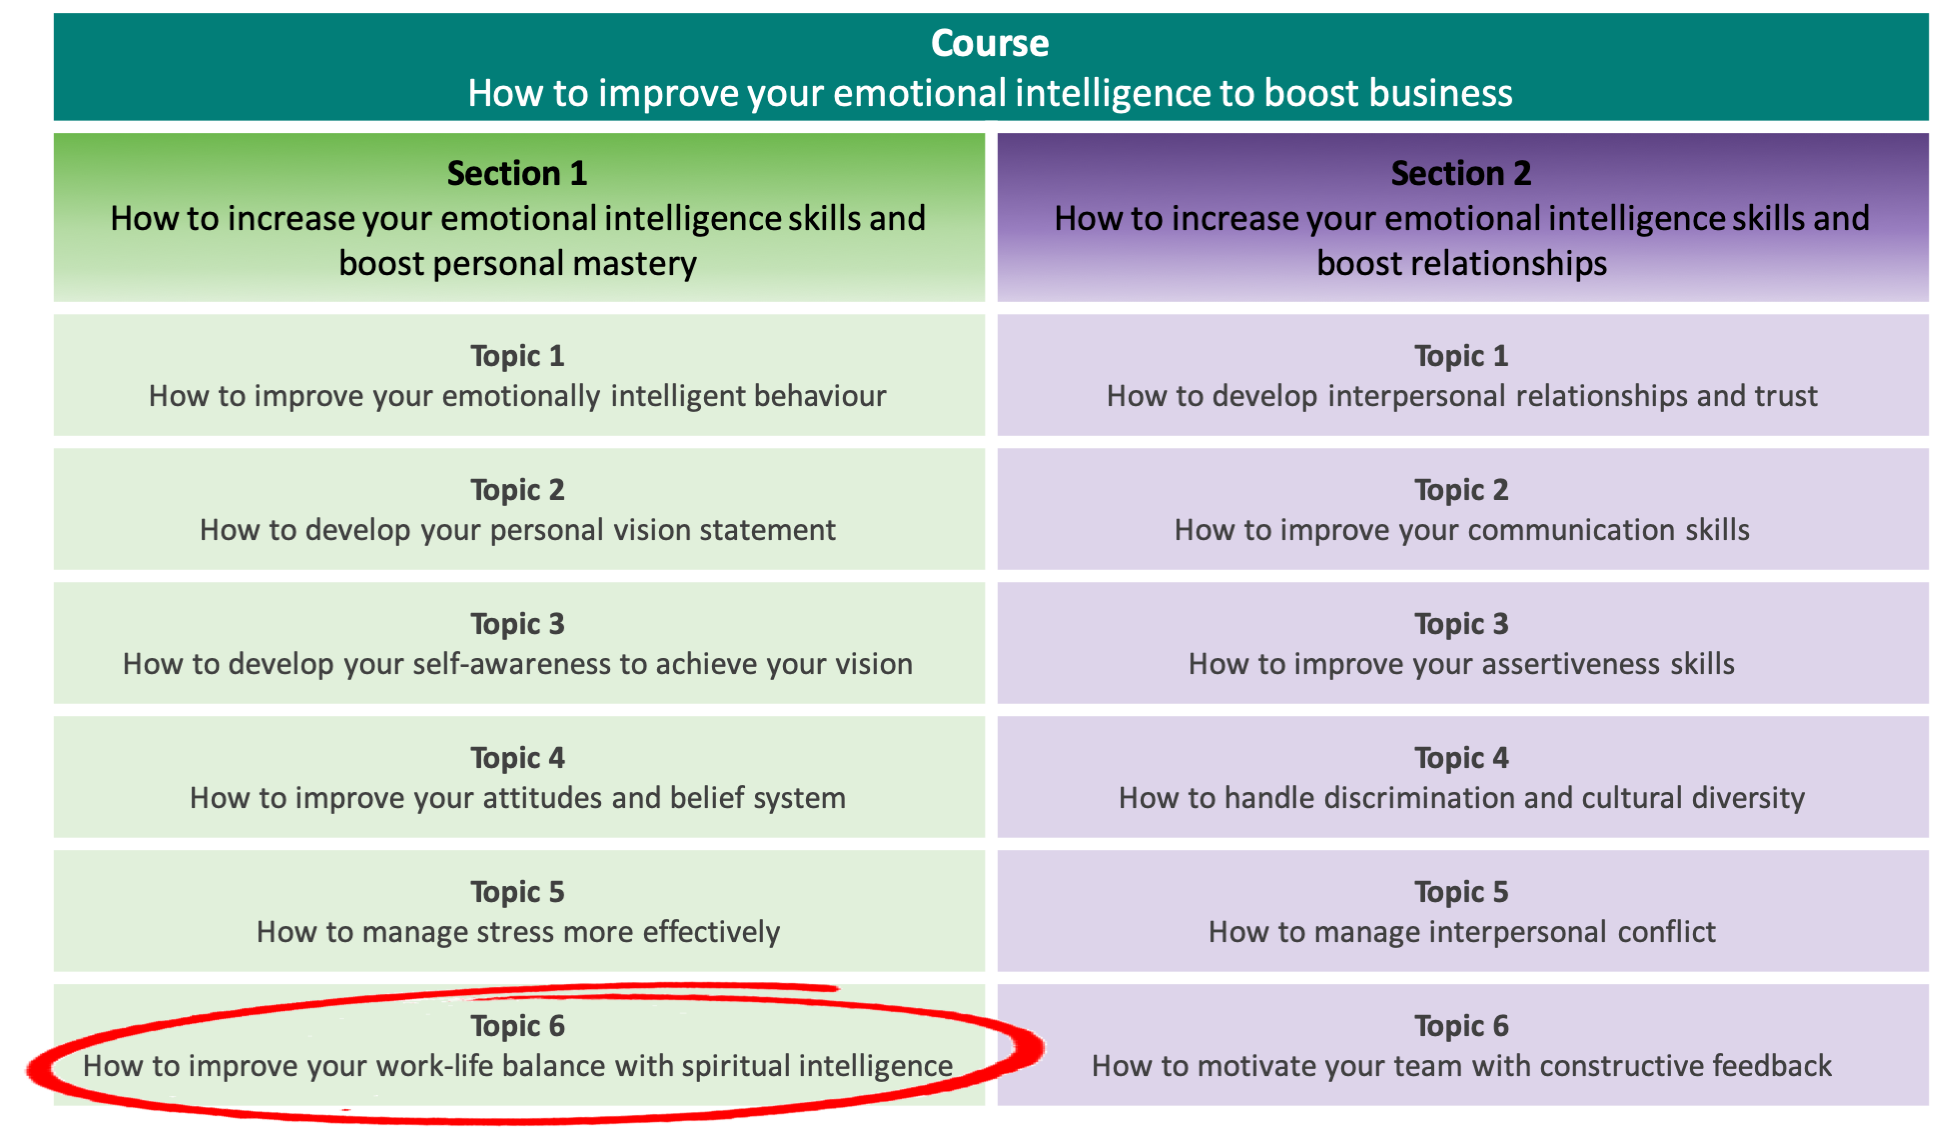 How to improve your work-life balance with spiritual intelligence